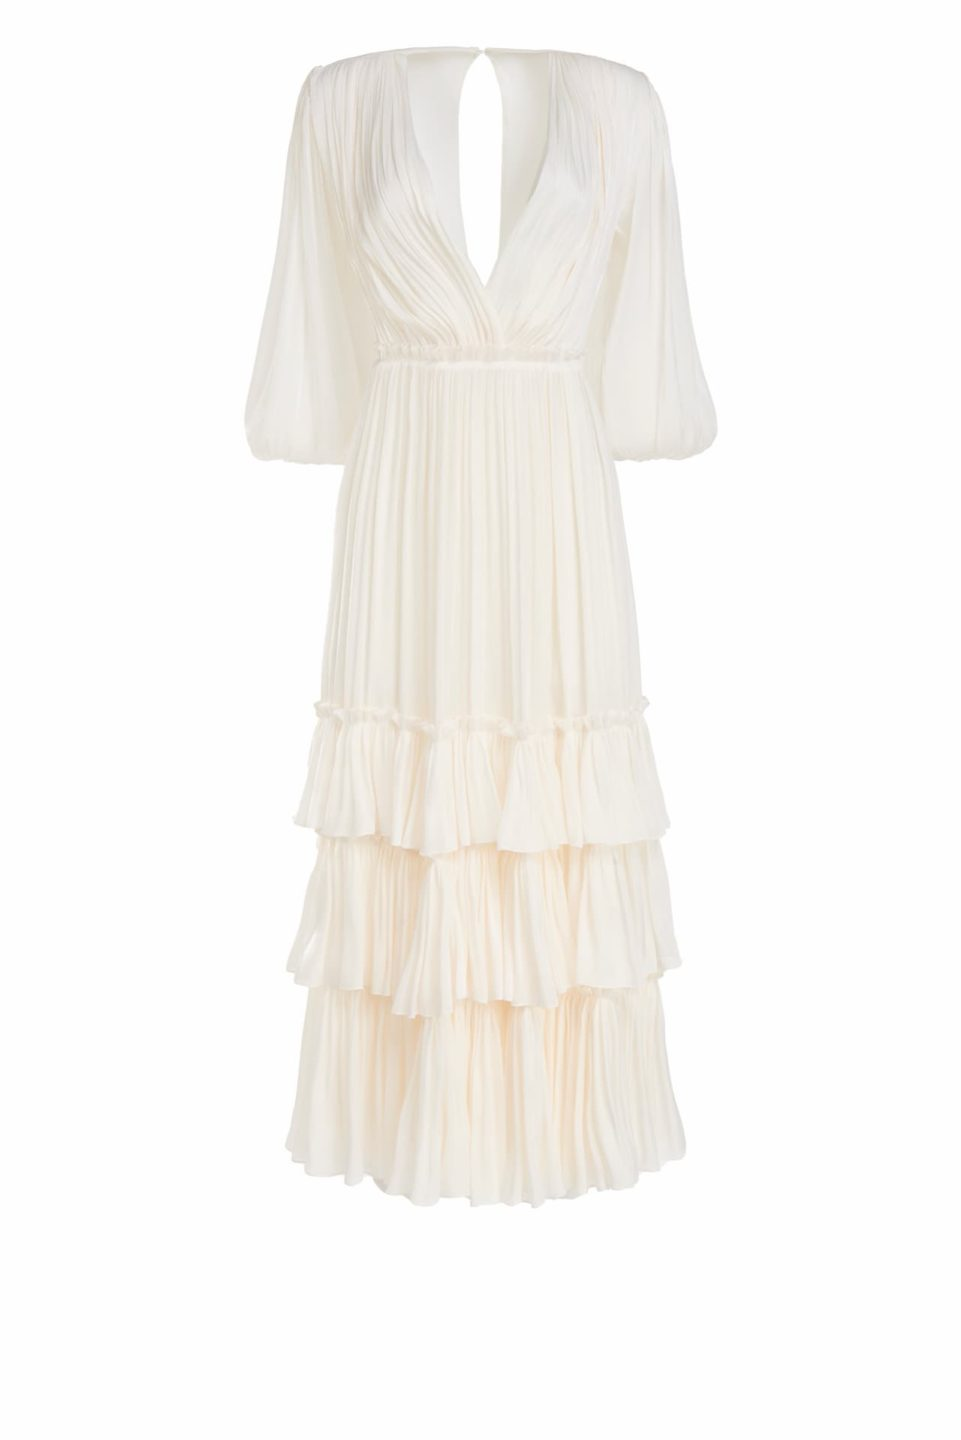 Celestina SS2145 White Iridescent Lurex Georgette Ruffle Tiered Dress